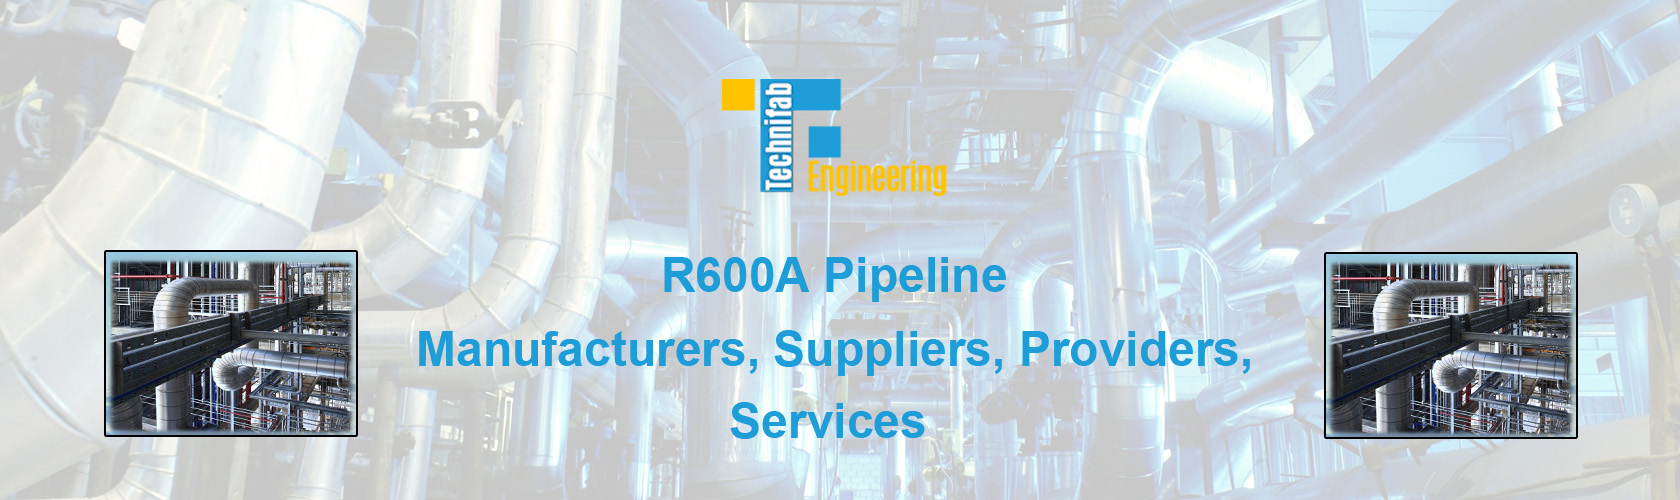 R600A Pipeline